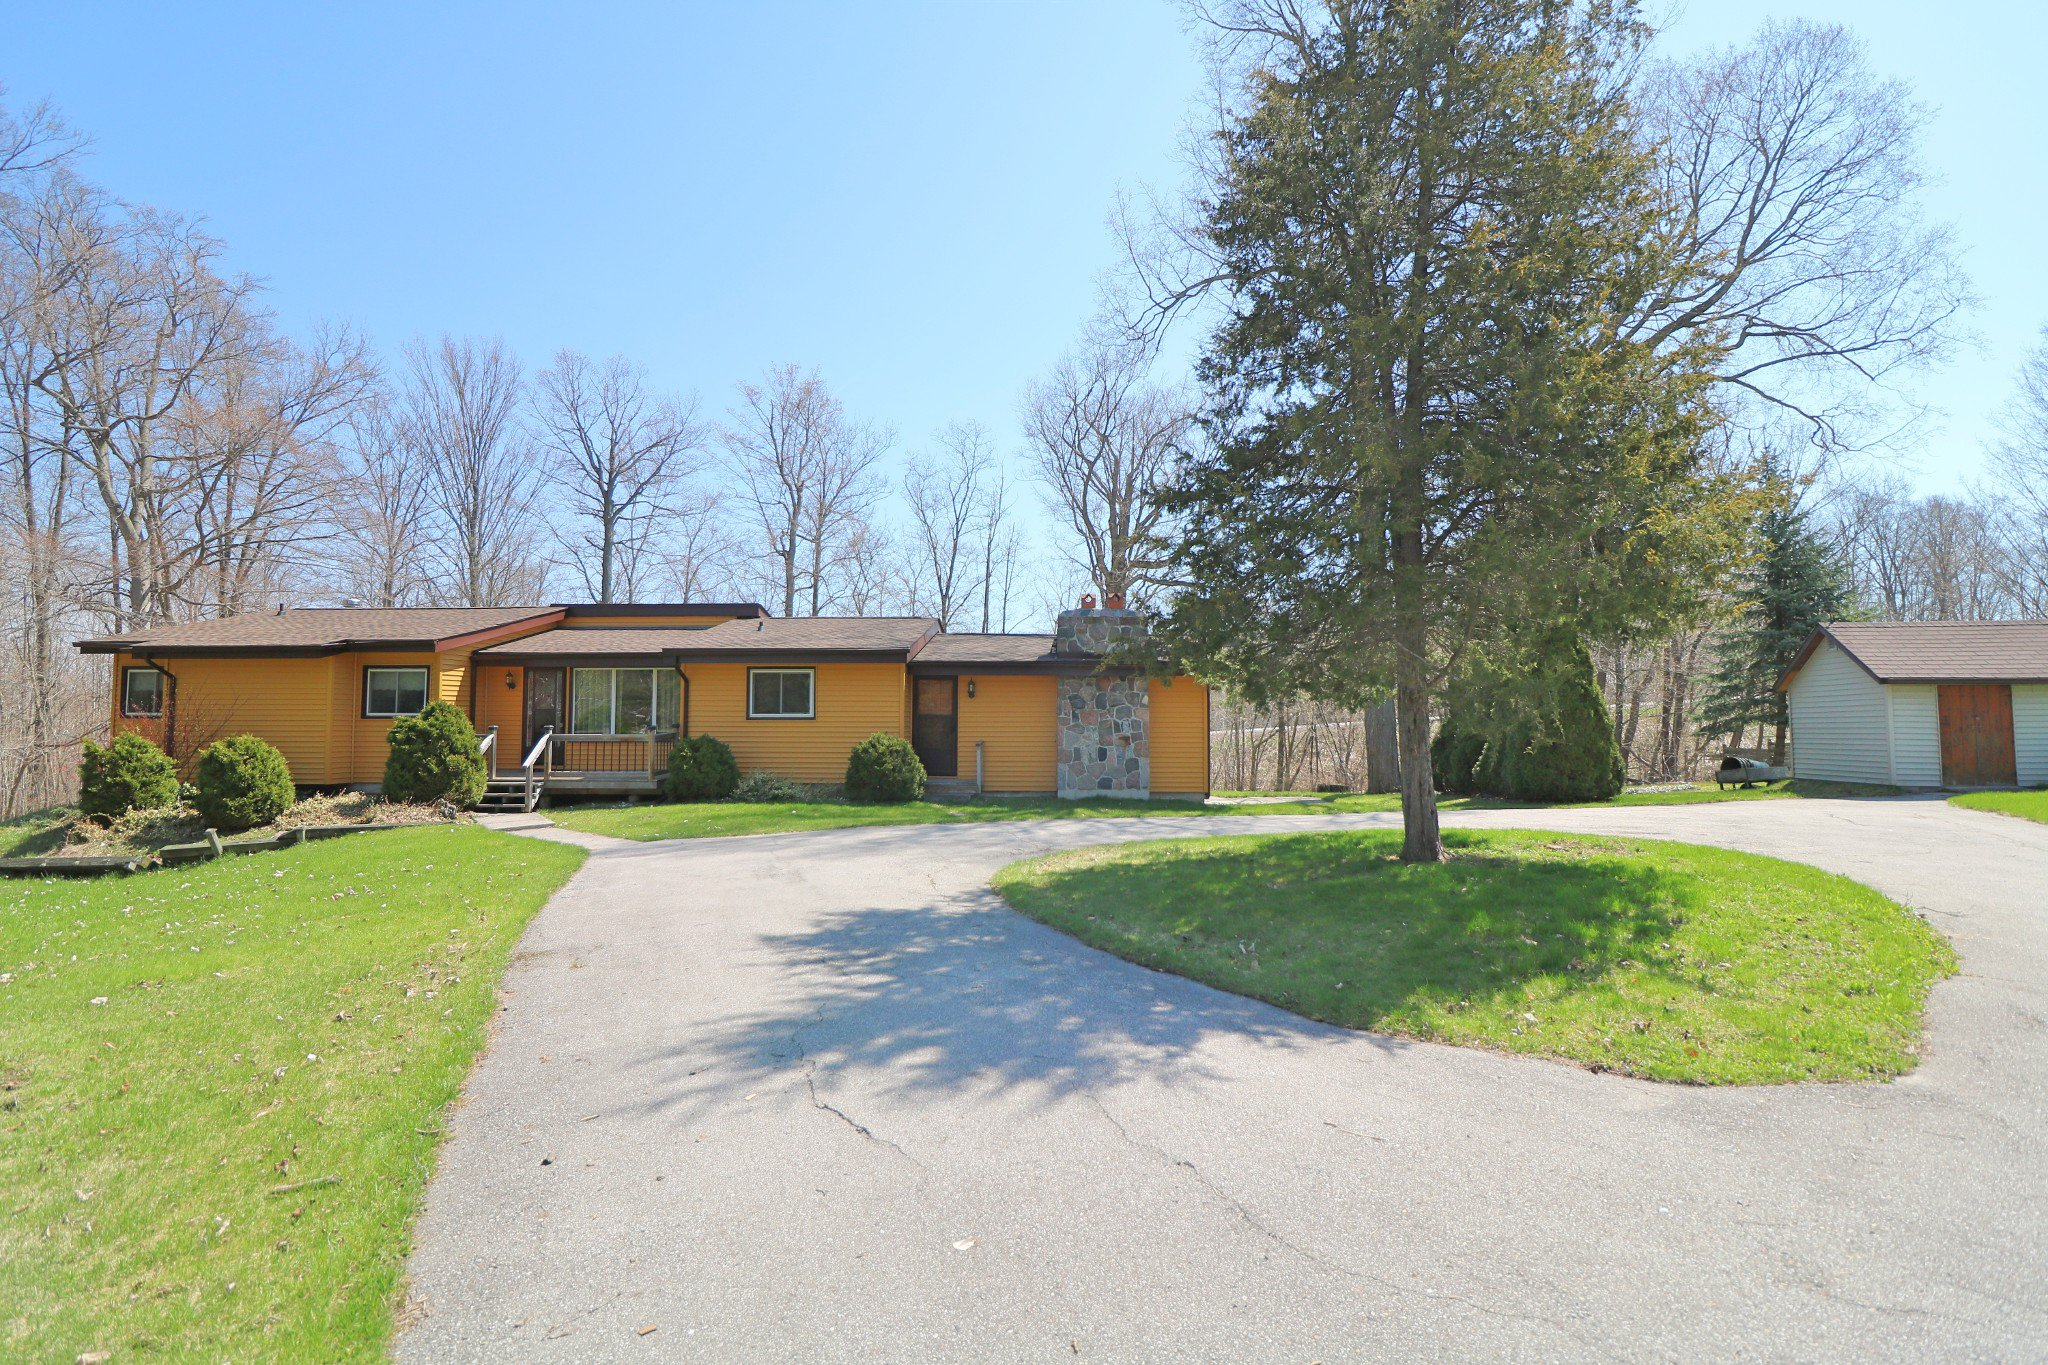 Photo 2: Photos: 37 Halstead Drive in Roseneath: Residential Detached for sale : MLS®# 192863